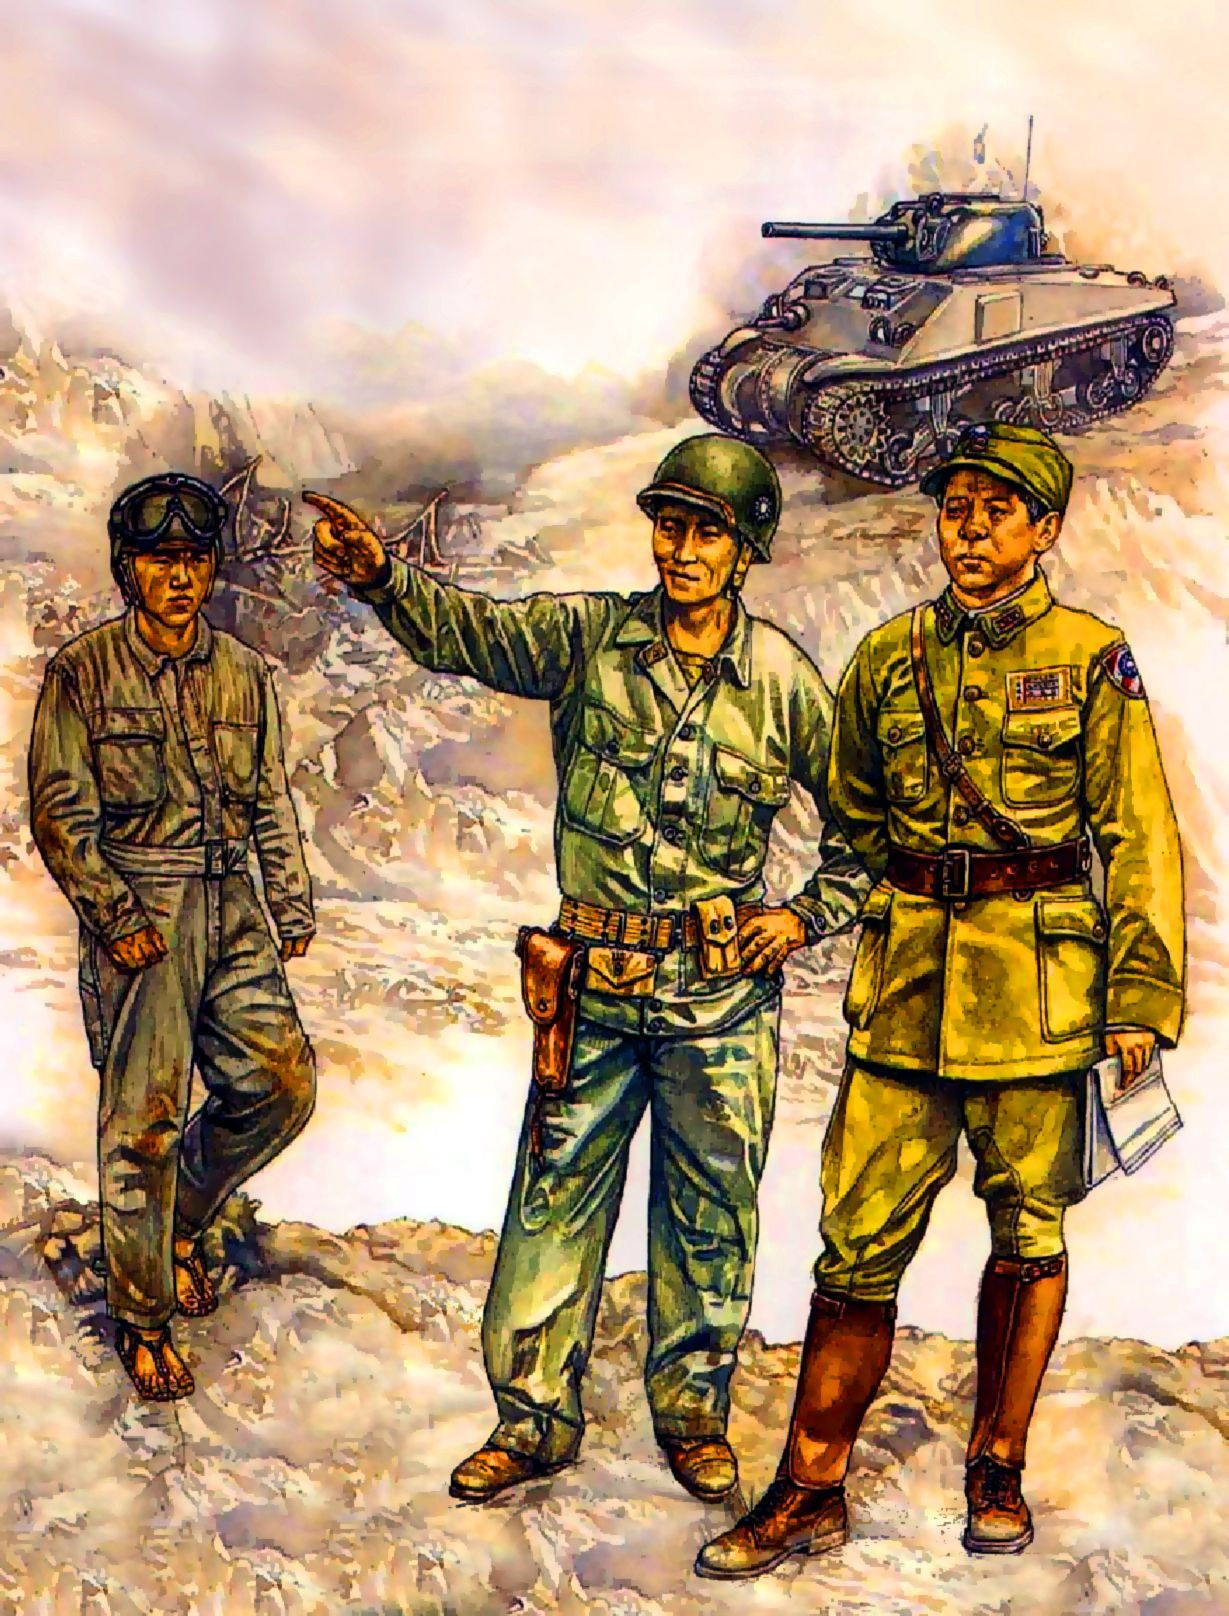 chinese civil war Chinese civil war, (1945–49), military struggle for control of china waged  between the nationalists (kuomintang) under chiang kai-shek and the  communists.